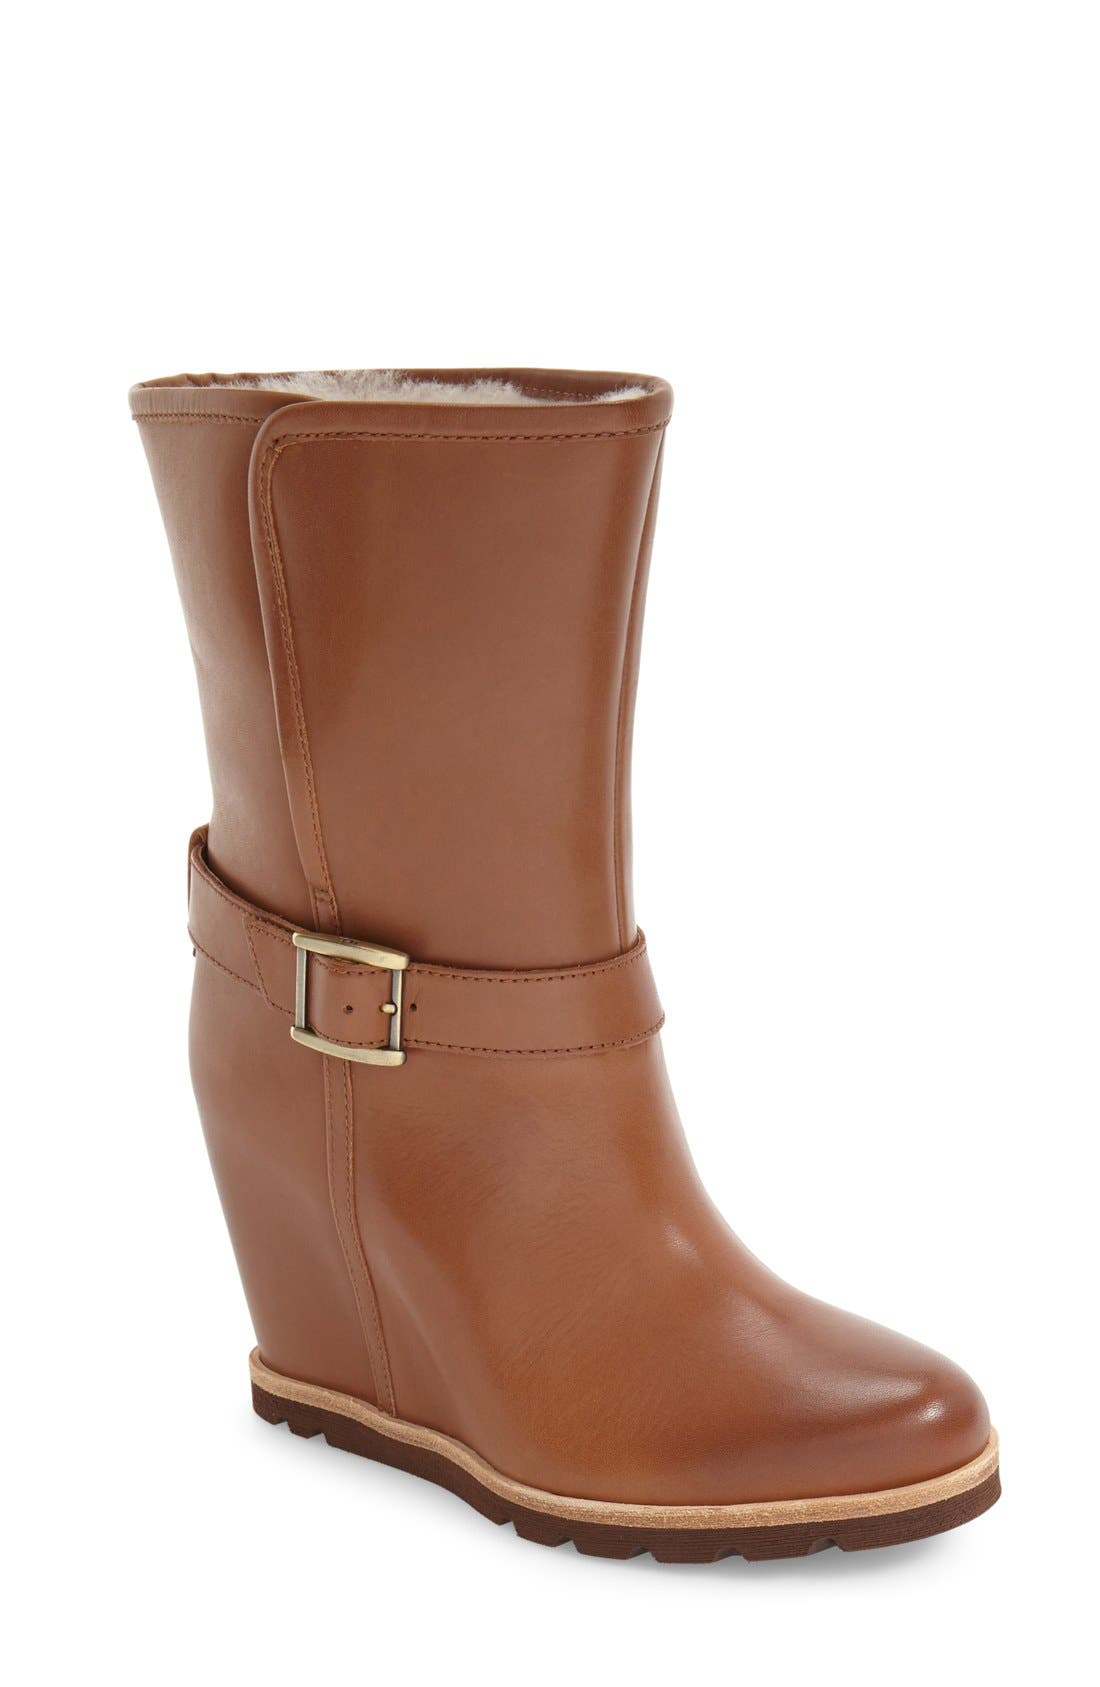 Alternate Image 1 Selected - UGG® 'Ellecia' Wedge Boot (Women)